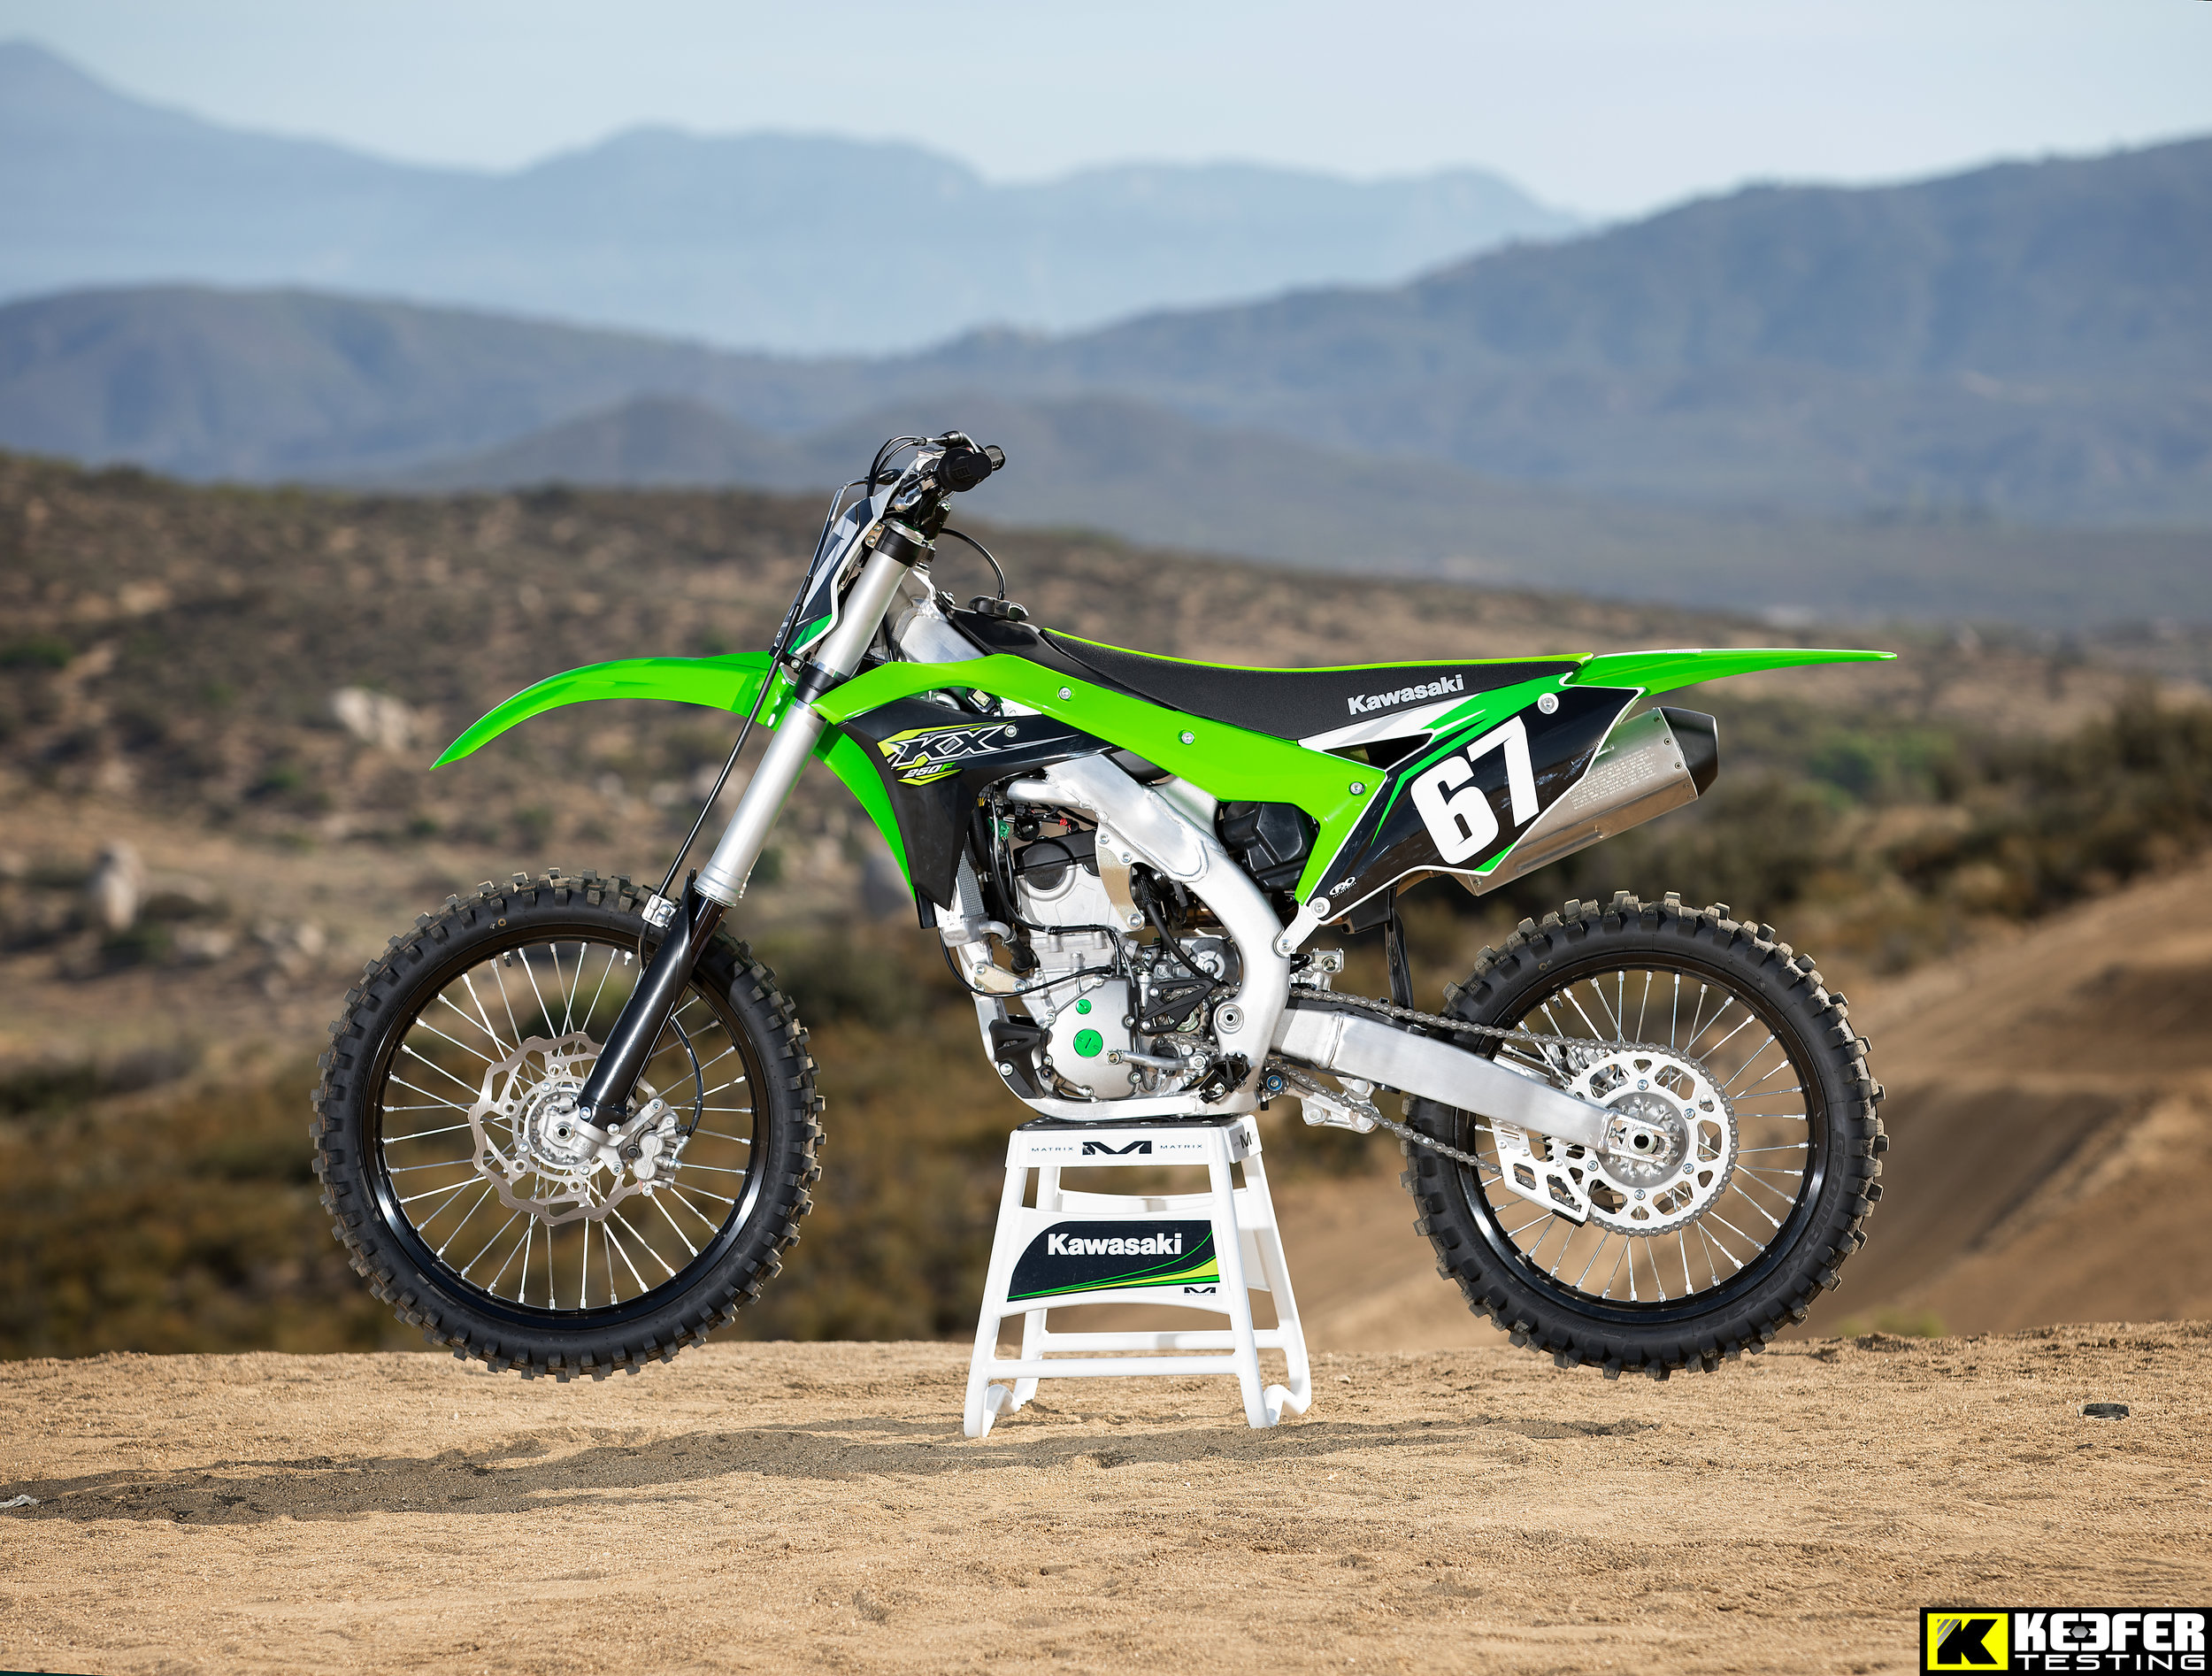 The 2018 Kawasaki KX250F has been refined mostly in the engine department.